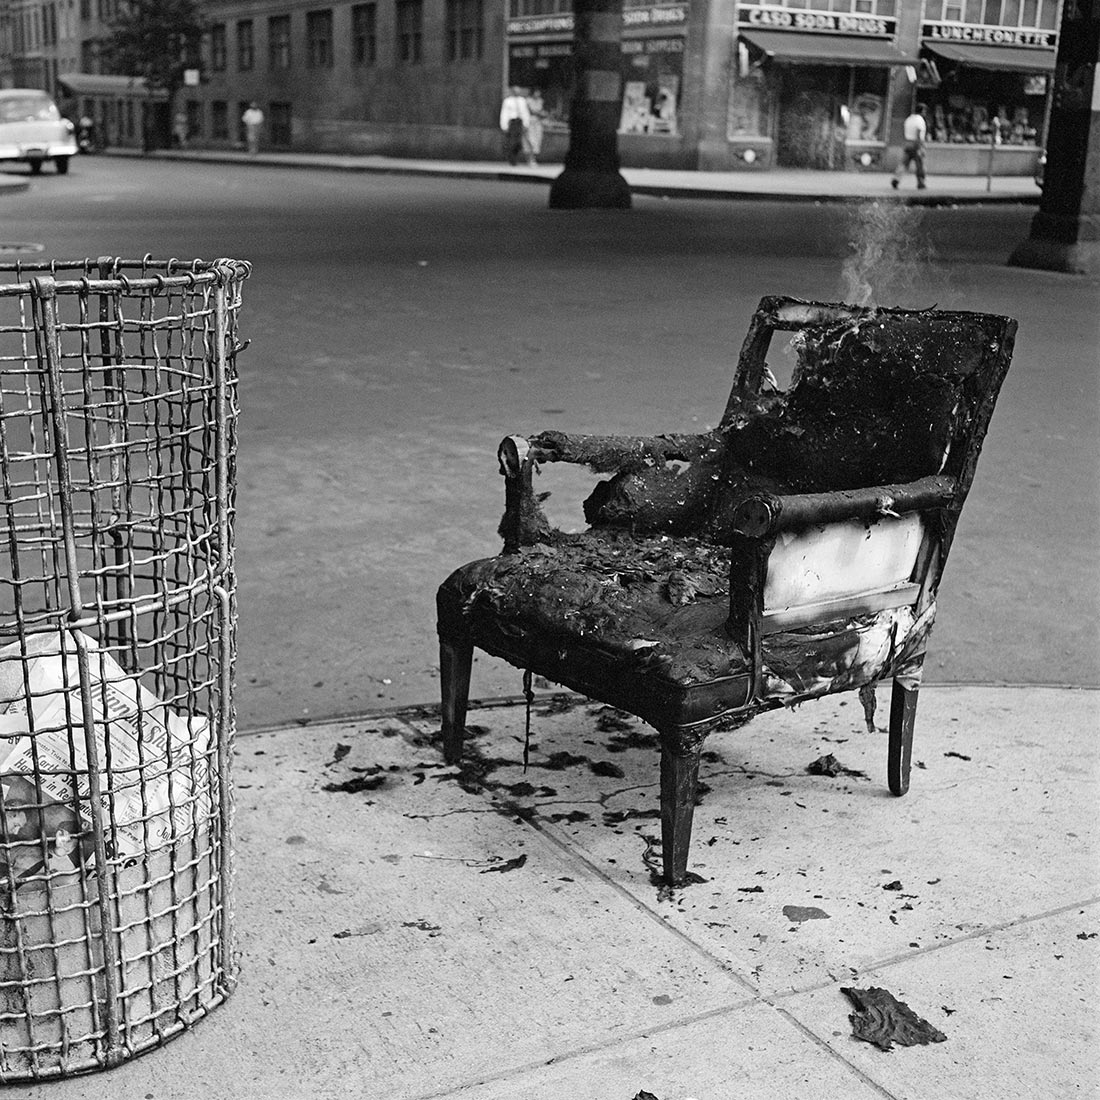 A burnt chair on a street corner with a wisp of smoke rising from it